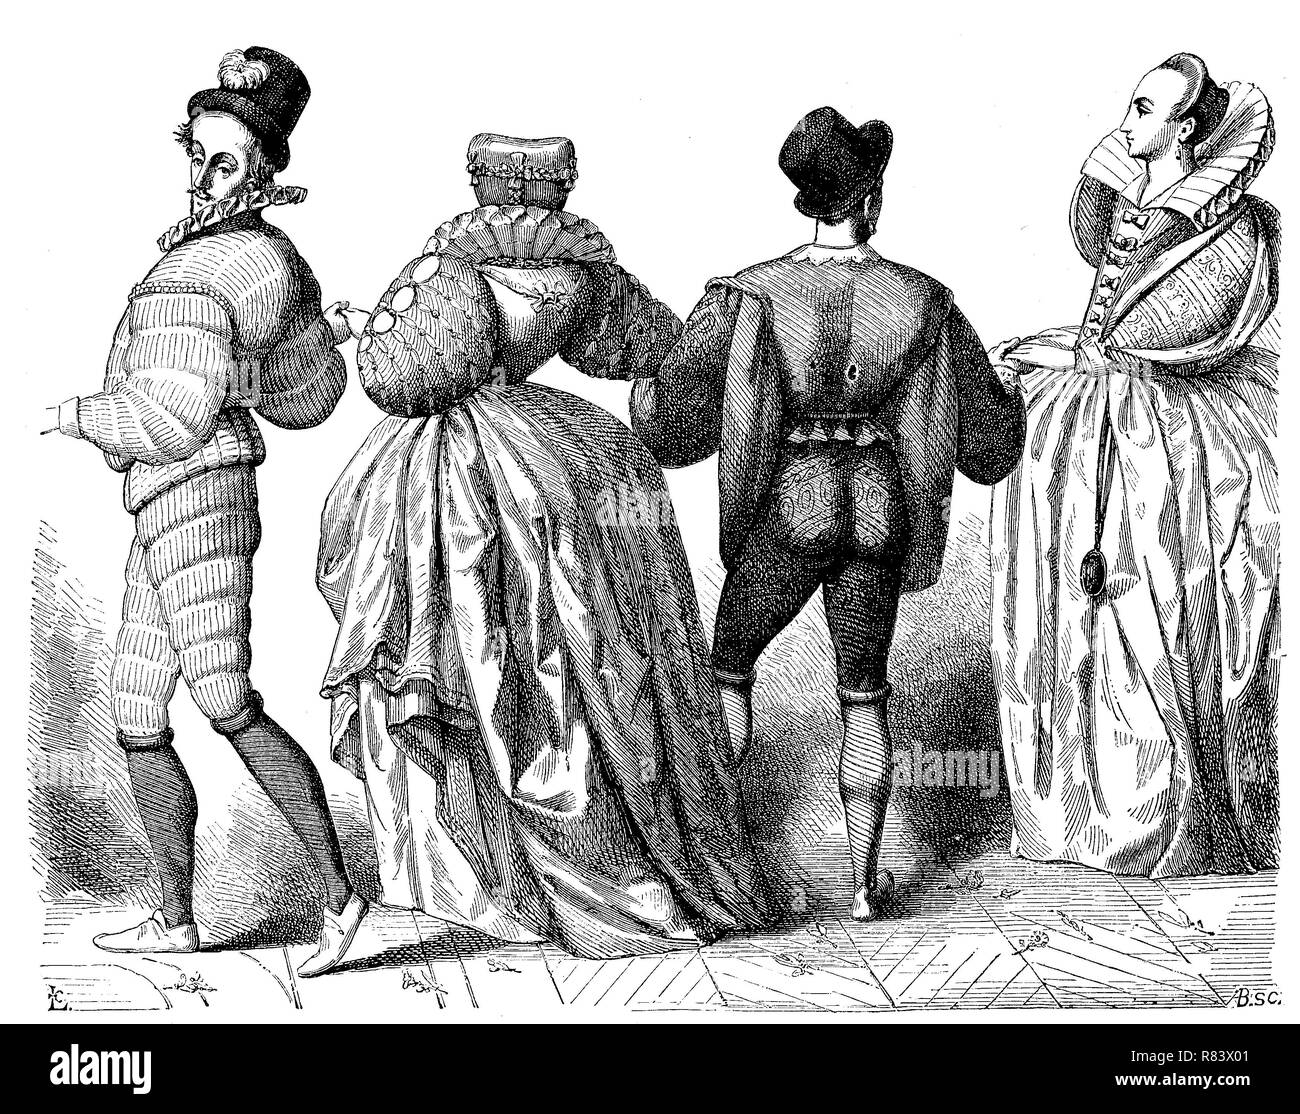 Digital improved reproduction, Fashion in France for Men and Women in ther year 1584, France, Die Mode im Jahr 1584 in Frankreich, Herren und Damen, from an original print from the year 1855 - Stock Image